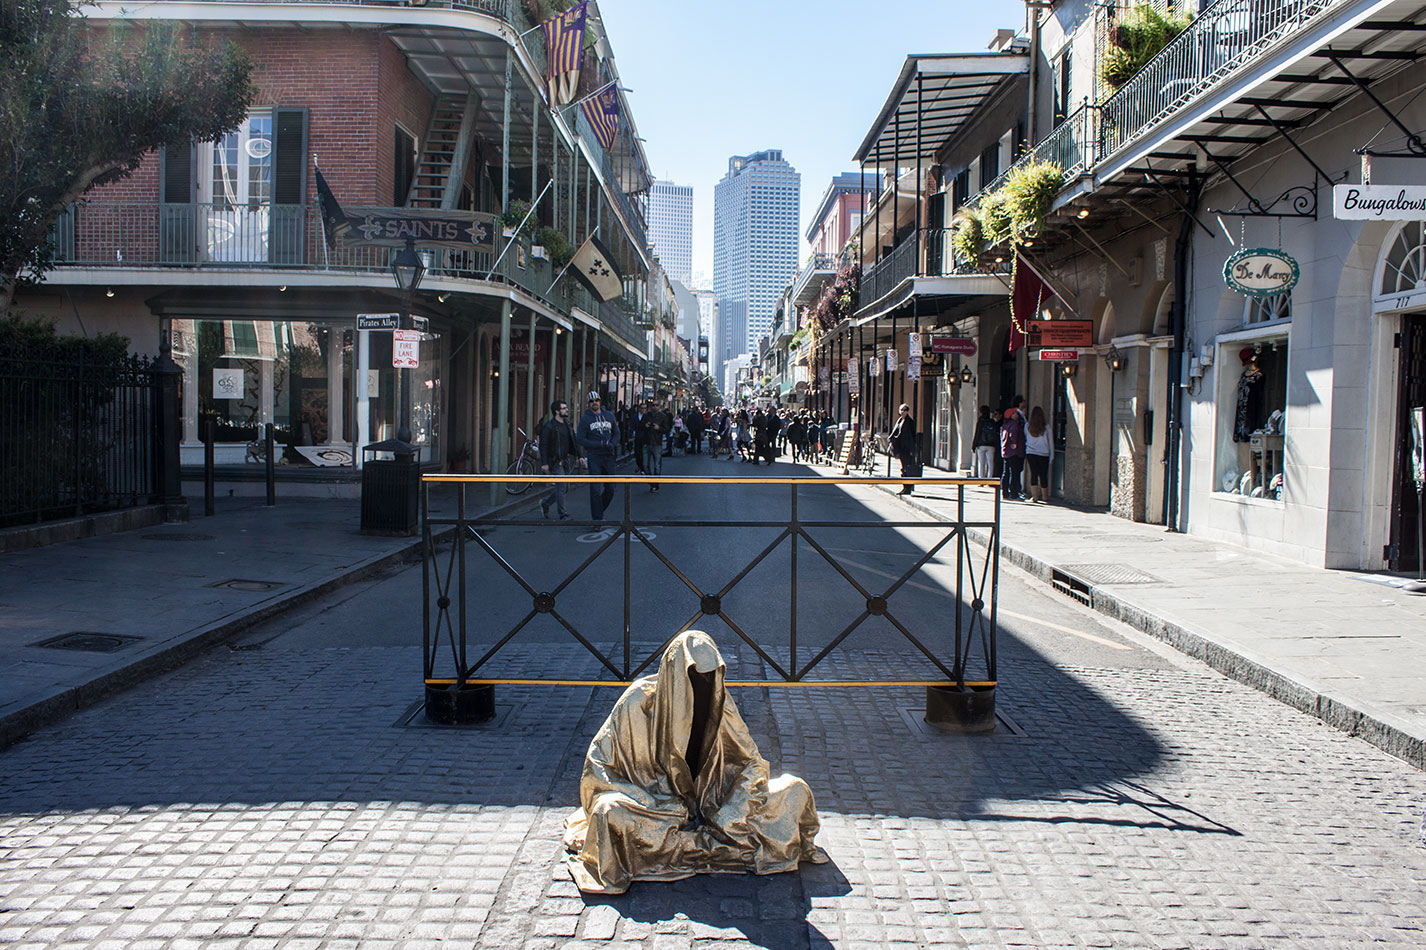 public-art-show-New-Orleans-Louisiana-usa-guardians-of-time-manfred-kili-kielnhofer-contemporary-fine-art-modern-arts-design-antiques-sculpture-5439